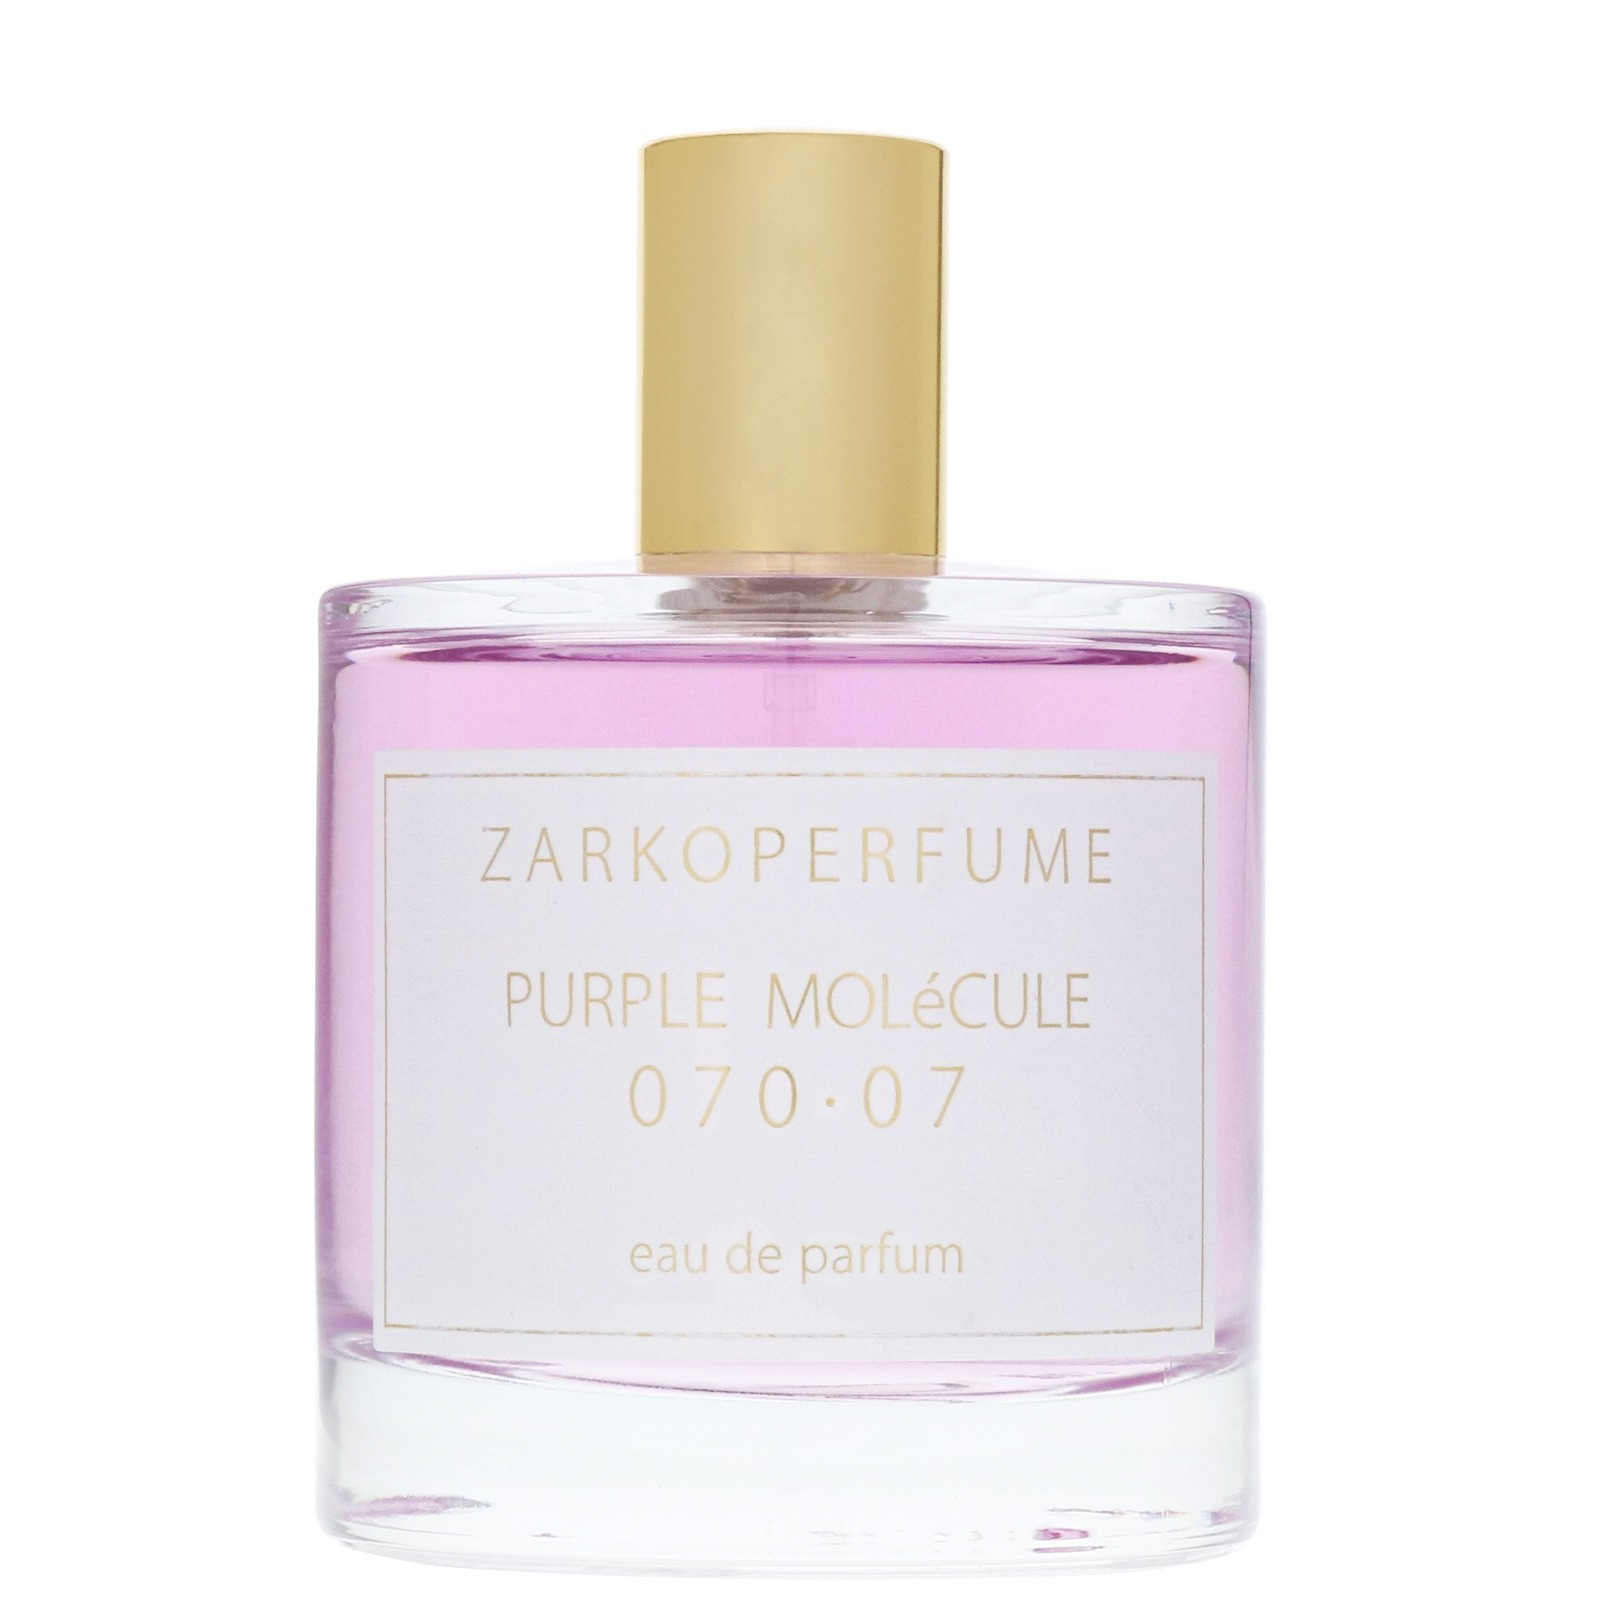 ZARKOPERFUME  Purple Molecule Eau de Parfum Spray 100ml